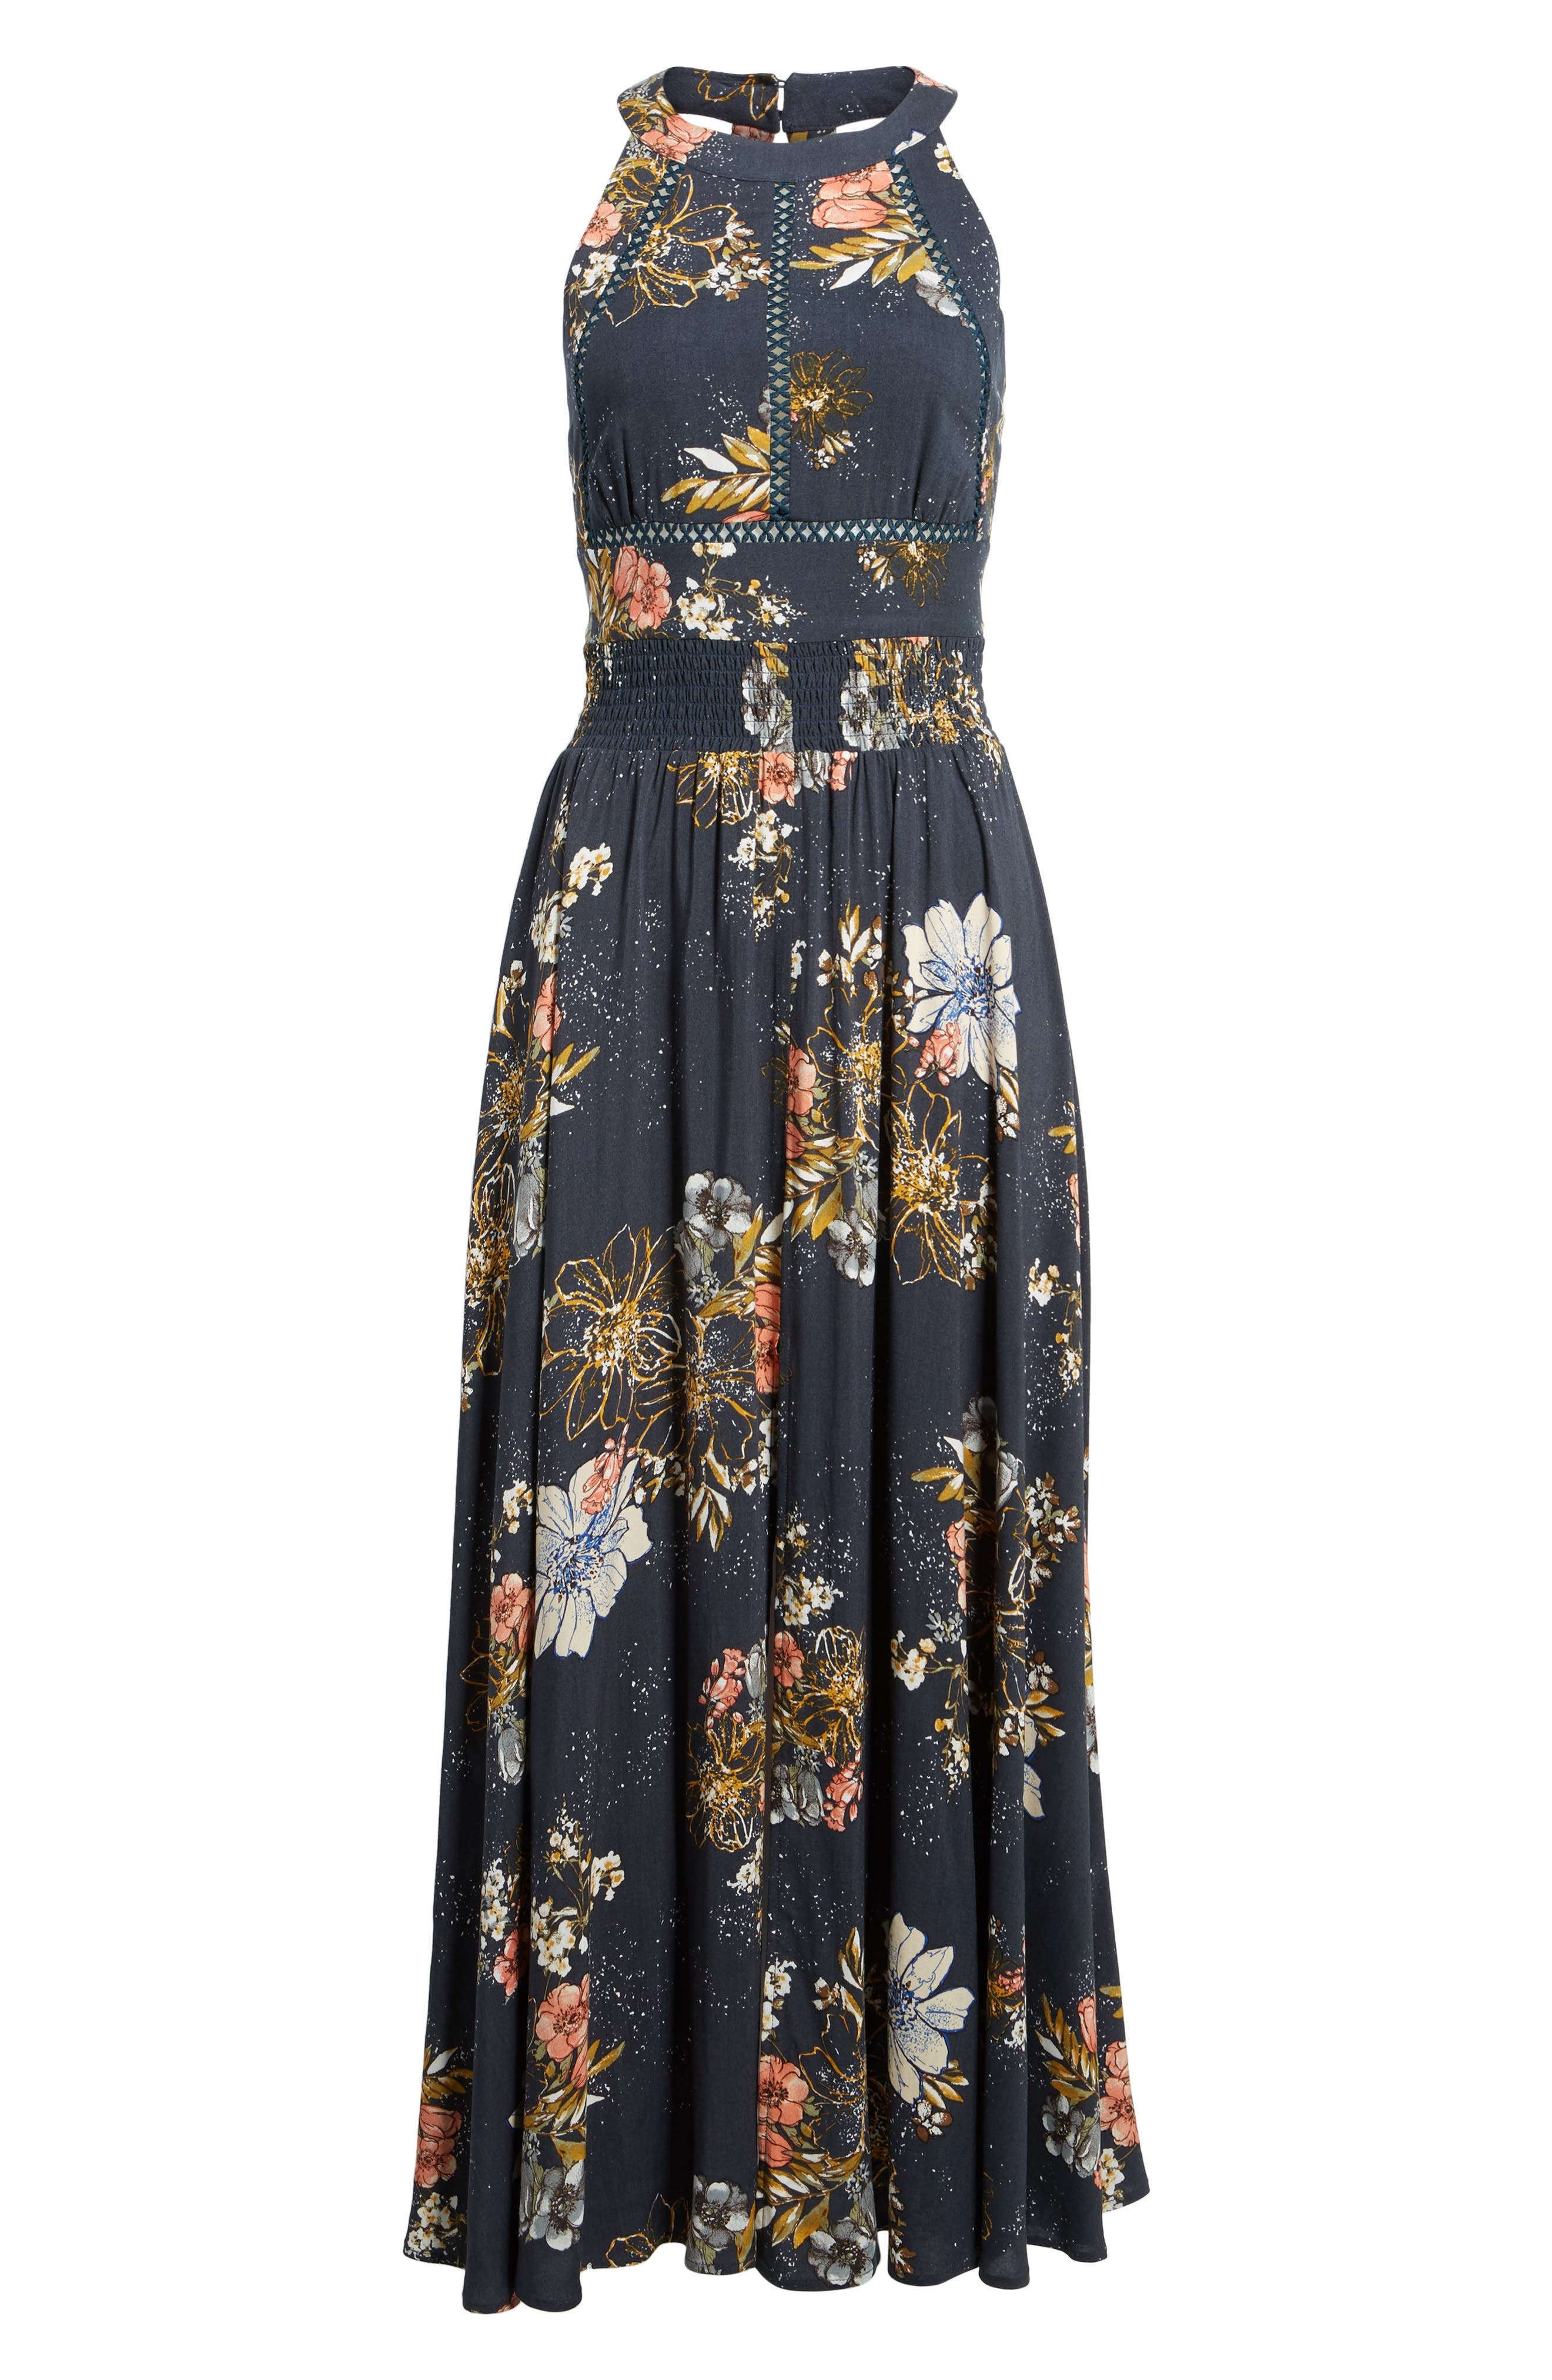 Floral Print Halter Maxi Dress,                             Alternate thumbnail 7, color,                             Navy Egret Abstract Floral